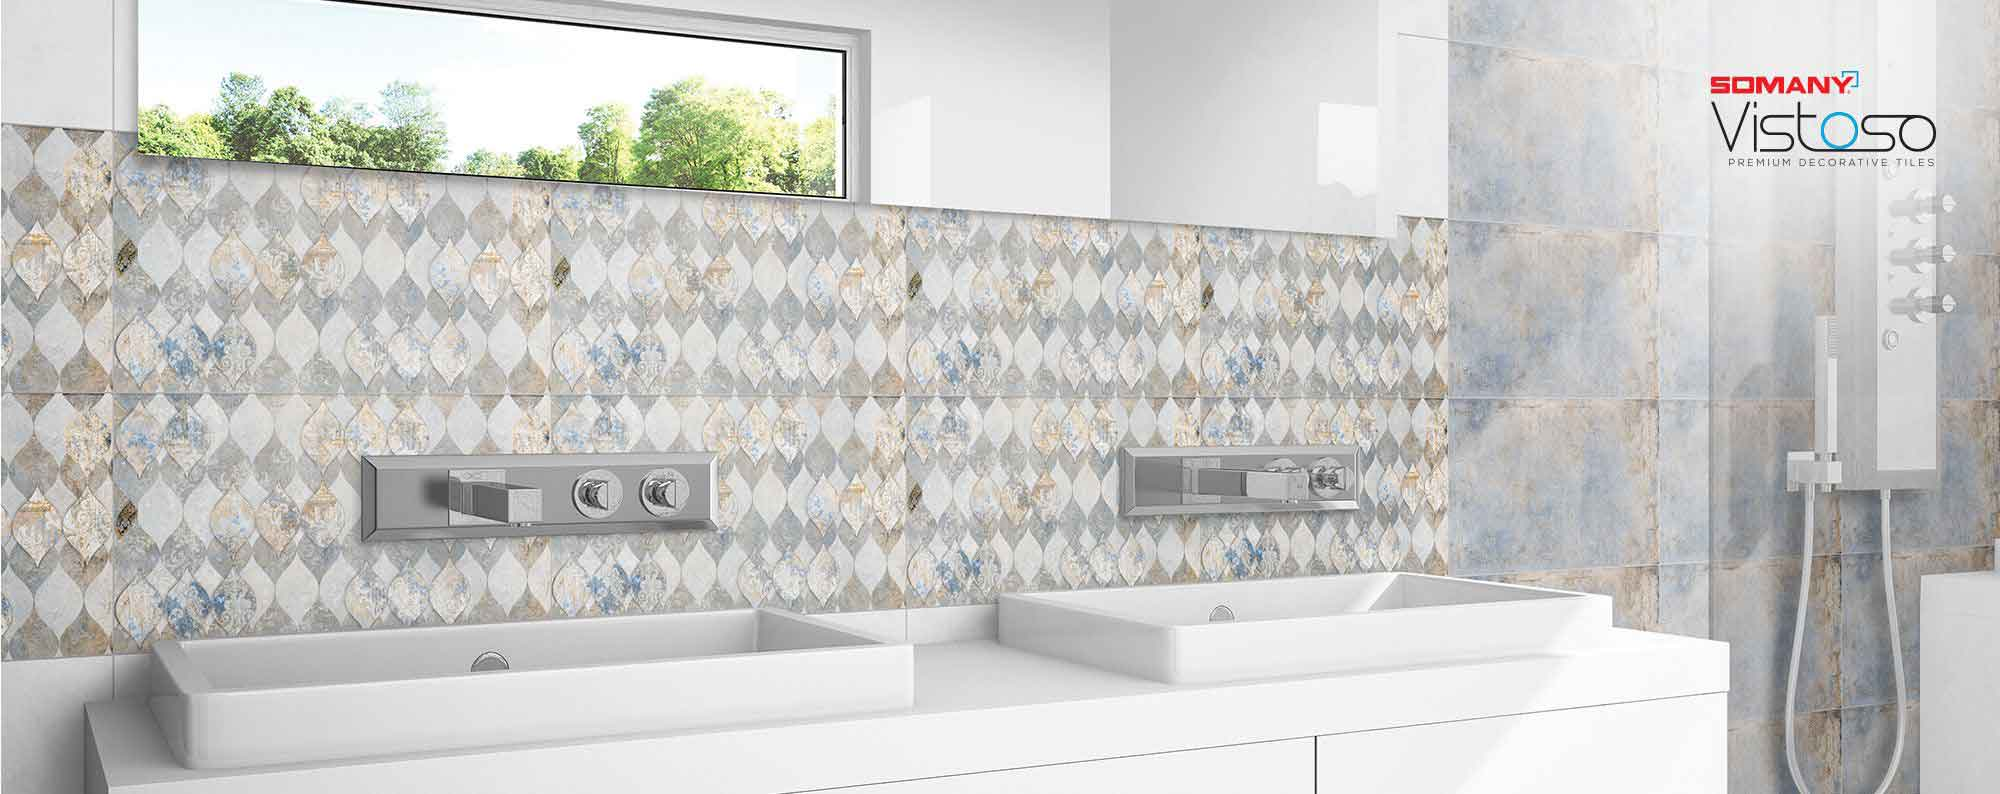 Bathroom Tile Gallery Largest Collection Of Ceramic Wall Tiles Design In India Somany